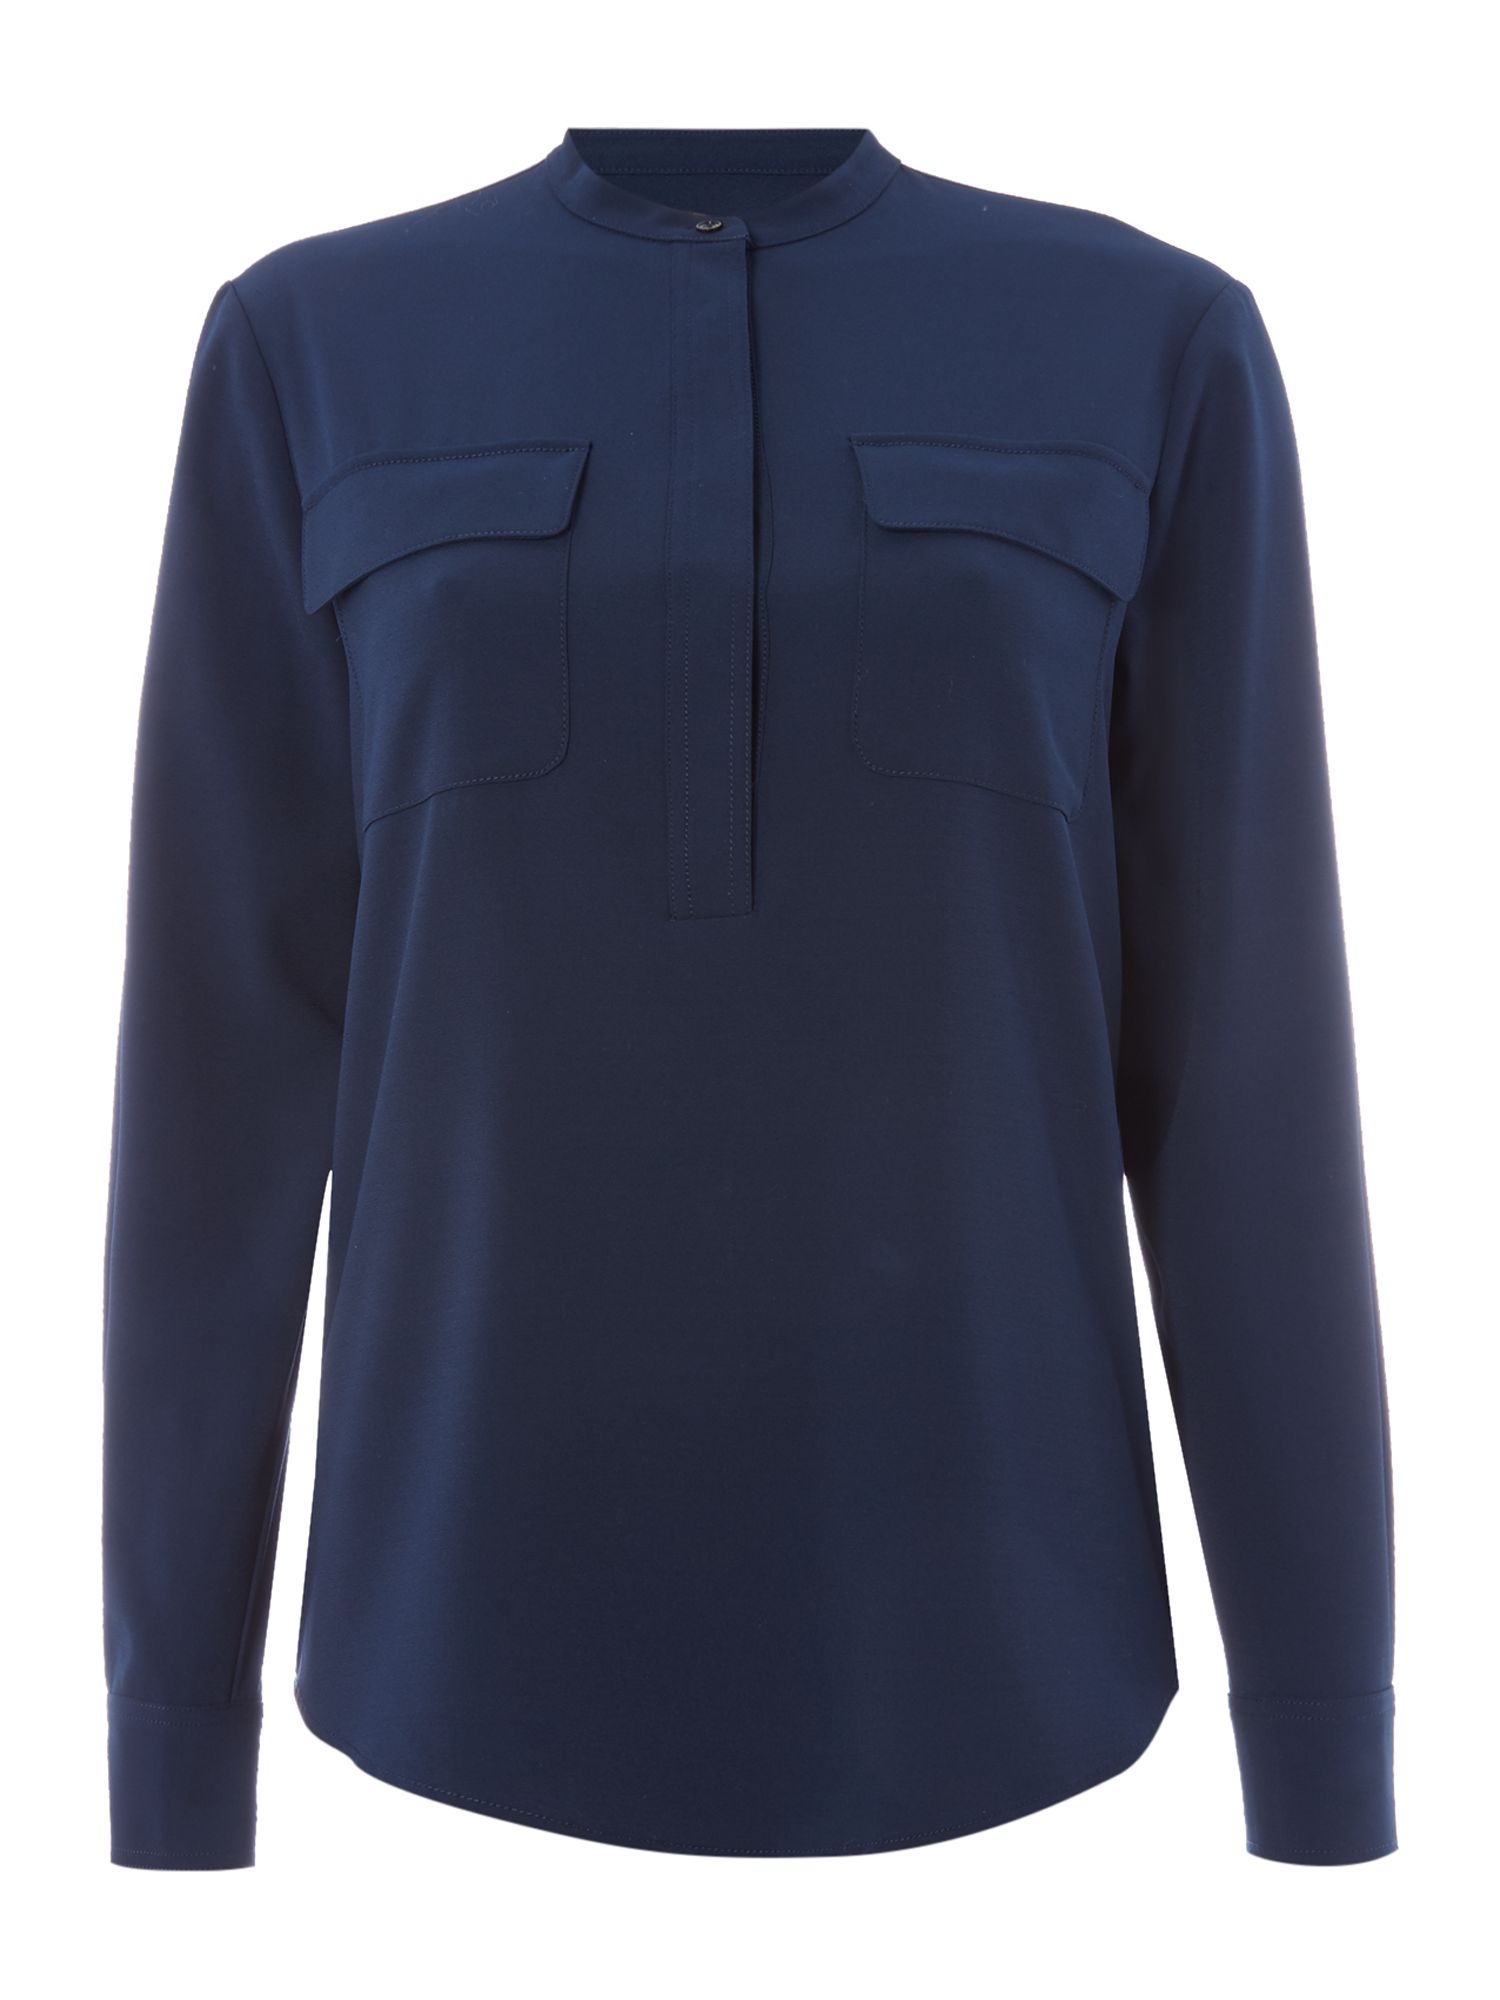 Gant Utility Blouse With Pockets In Crepe, Marine